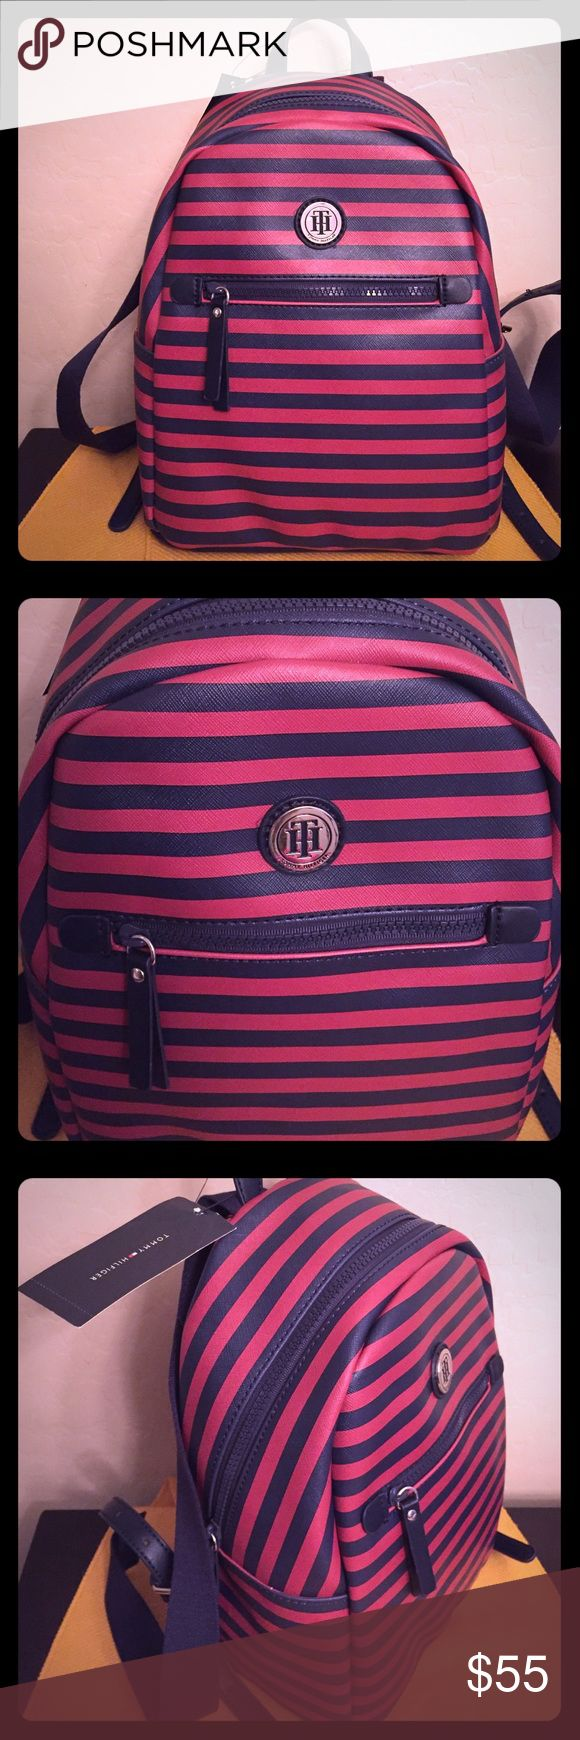 🆕 🎒Tommy Hilfiger Backpack🎒 🎒Authentic Tommy Hilfiger Backpack. Striped Red & Navy Blue with Navy Blue Accents. TH Silver Plate on the Front. Navy Blue Grab Bag & Straps. Adjustable Straps have Silver Buckles. 2 Zipped Compartments. The Larger One has 2 Storage Areas. One is Zipped. Lining is Navy Blue with Red. Brand New. Excellent Condition. No Trades. See Other Cool Backpacks in My Closet.🎒 Tommy Hilfiger Bags Backpacks